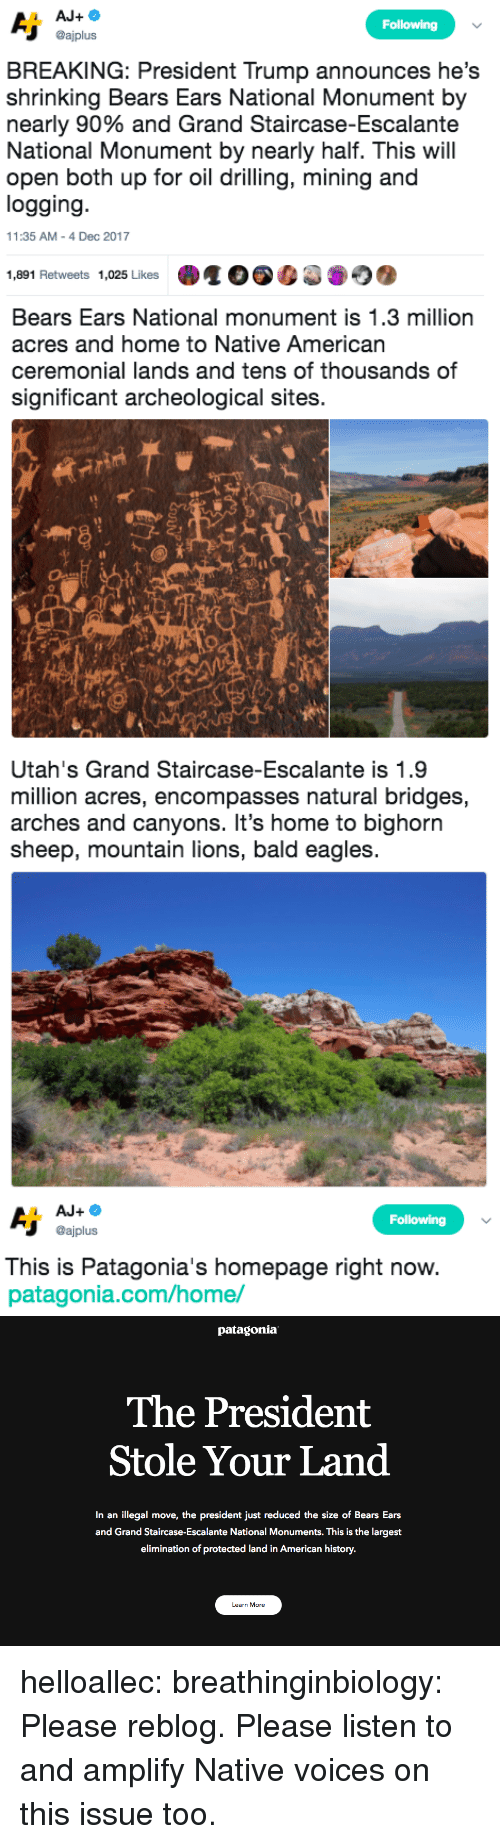 drilling: Following  @ajplus  BREAKING: President Trump announces he's  shrinking Bears Ears National Monument by  nearly 90% and Grand Staircase-Escalante  National Monument by nearly half. This will  open both up for oil drilling, mining and  logging  11:35 AM-4 Dec 2017  1,891 Retweets 1,025 Likes   Bears Ears National monument is 1.3 million  acres and home to Native American  ceremonial lands and tens of thousands of  significant archeological sites.  sh   Utah's Grand Staircase-Escalante is 1.9  million acres, encompasses natural bridges,  arches and canyons. It's home to bighorn  sheep, mountain lions, bald eagles   Following  @ajplus  This is Patagonia's homepage right now  patagonia.com/home/   patagonia  The President  Stole Your Land  In an illegal move, the president just reduced the size of Bears Ears  and Grand Staircase-Escalante National Monuments. This is the largest  elimination of protected land in American history.  Learn More helloallec: breathinginbiology: Please reblog.  Please listen to and amplify Native voices on this issue too.